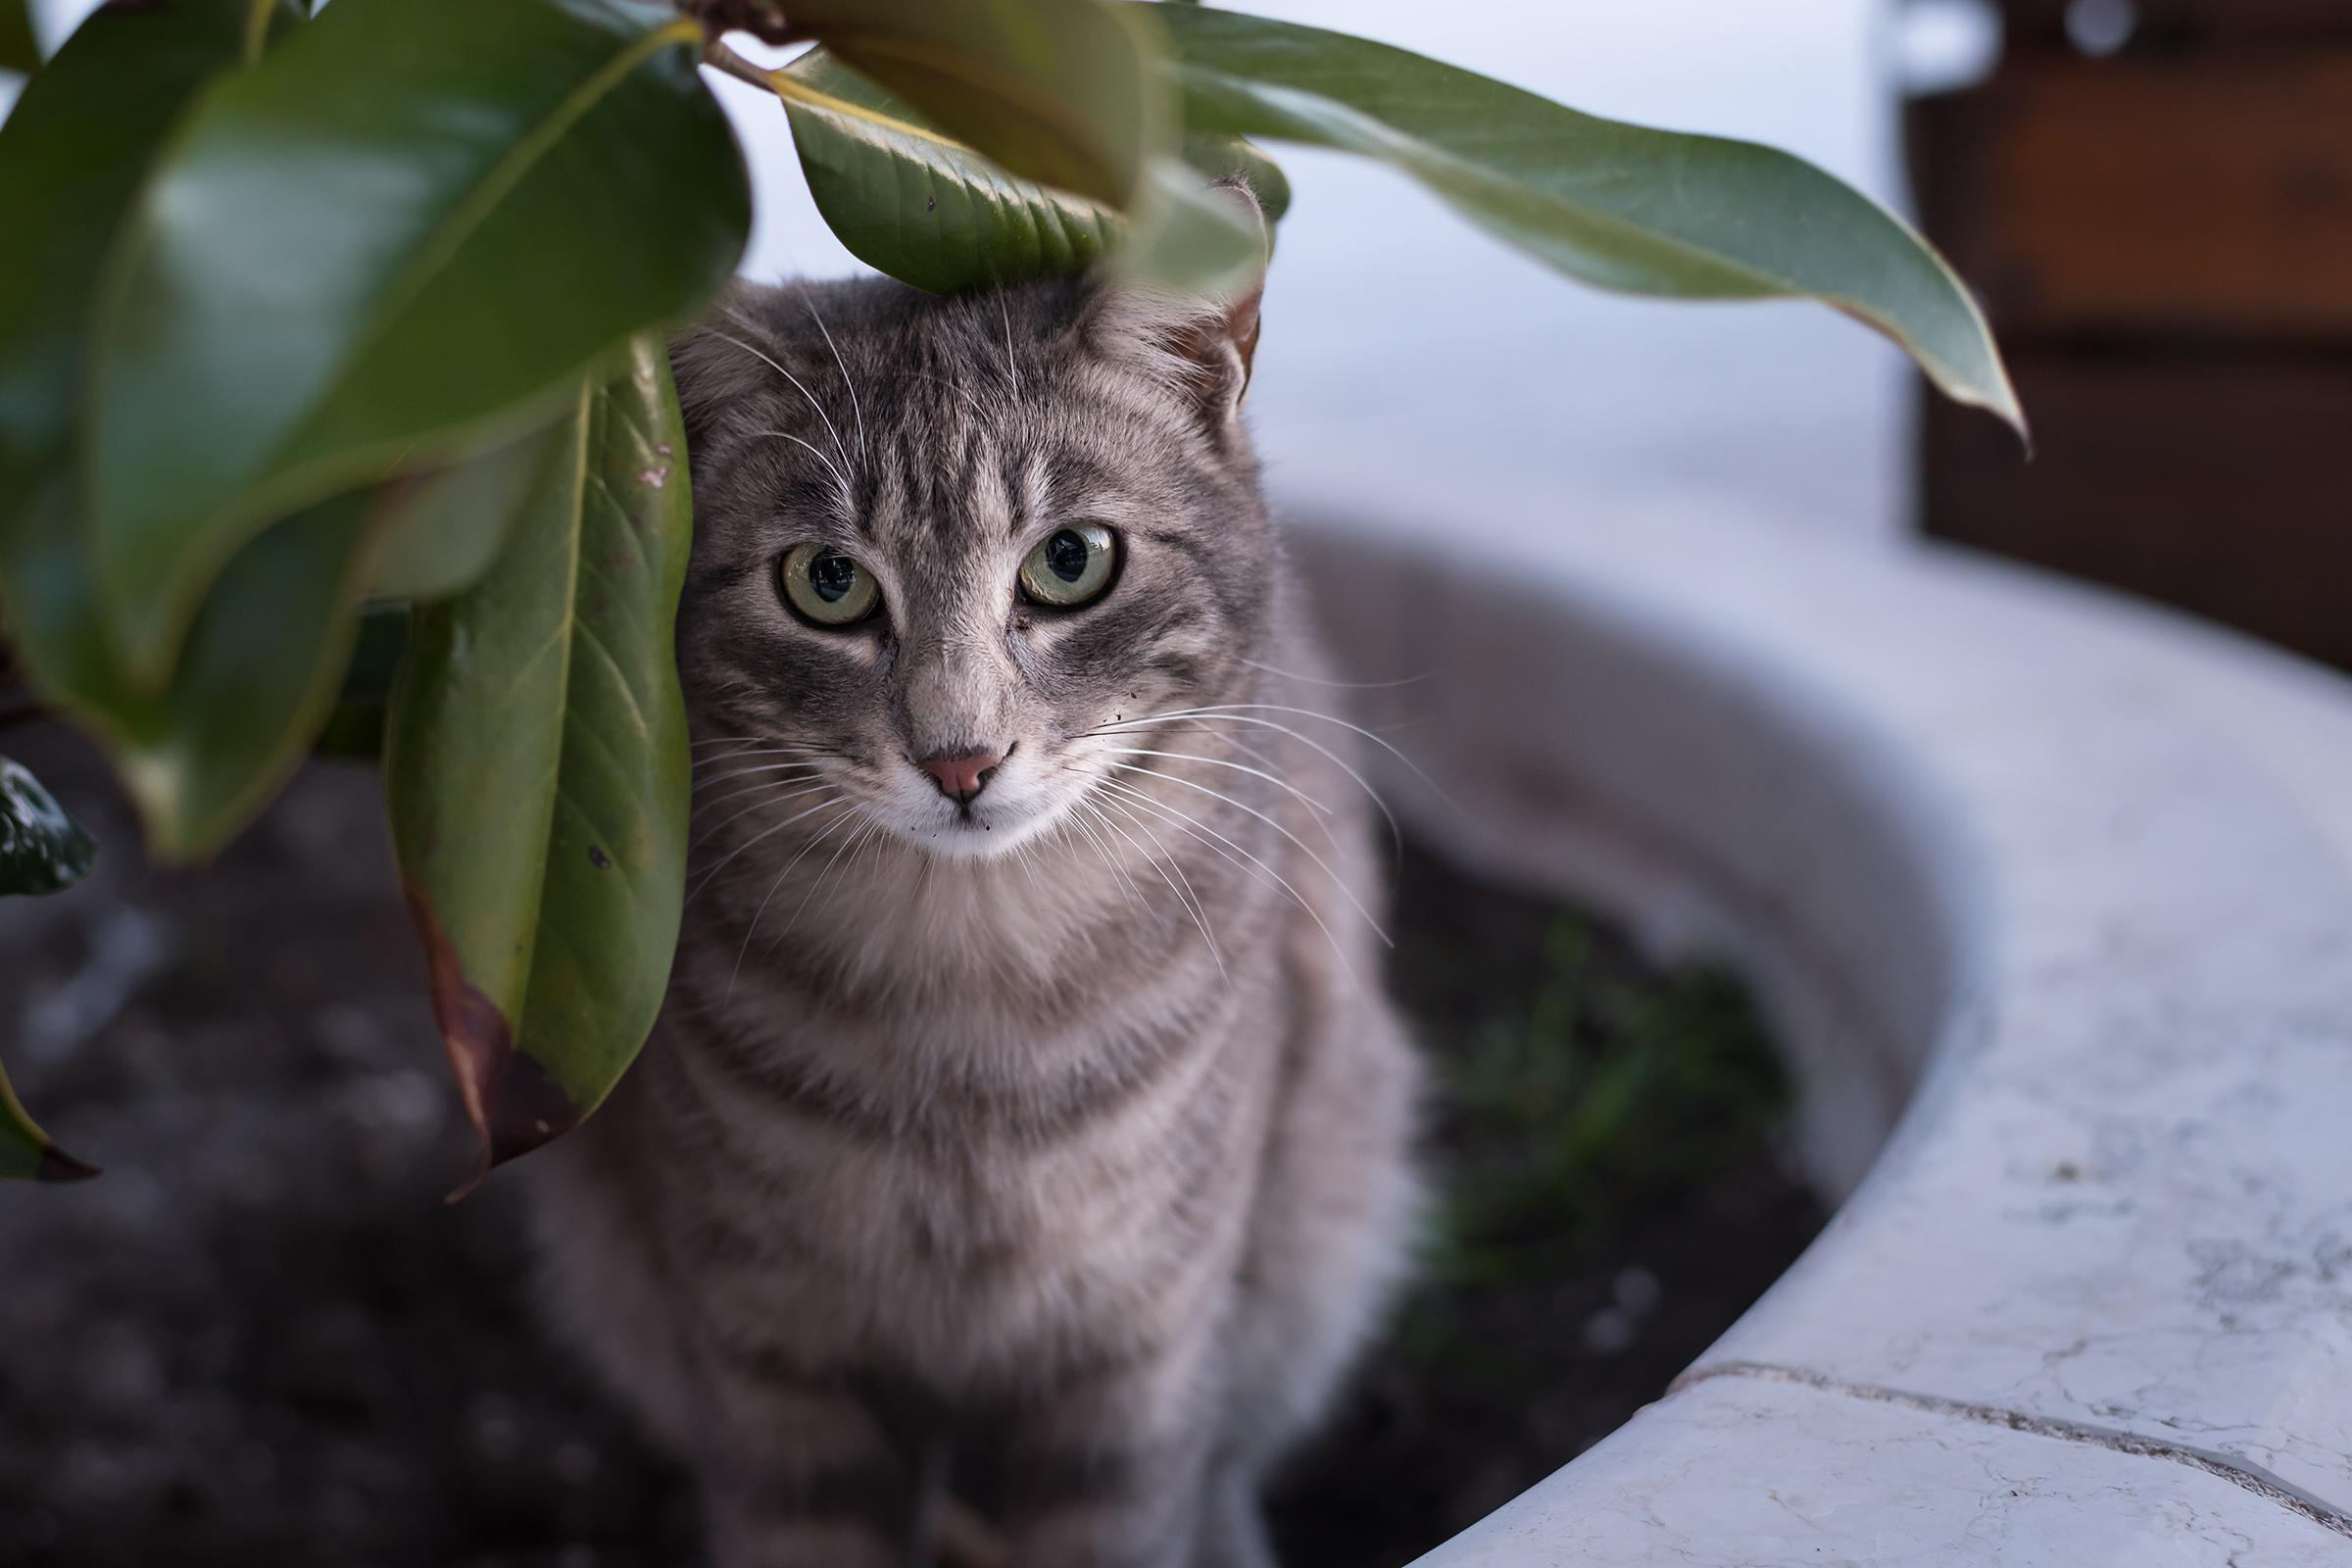 a cat sitting on top of a green plant